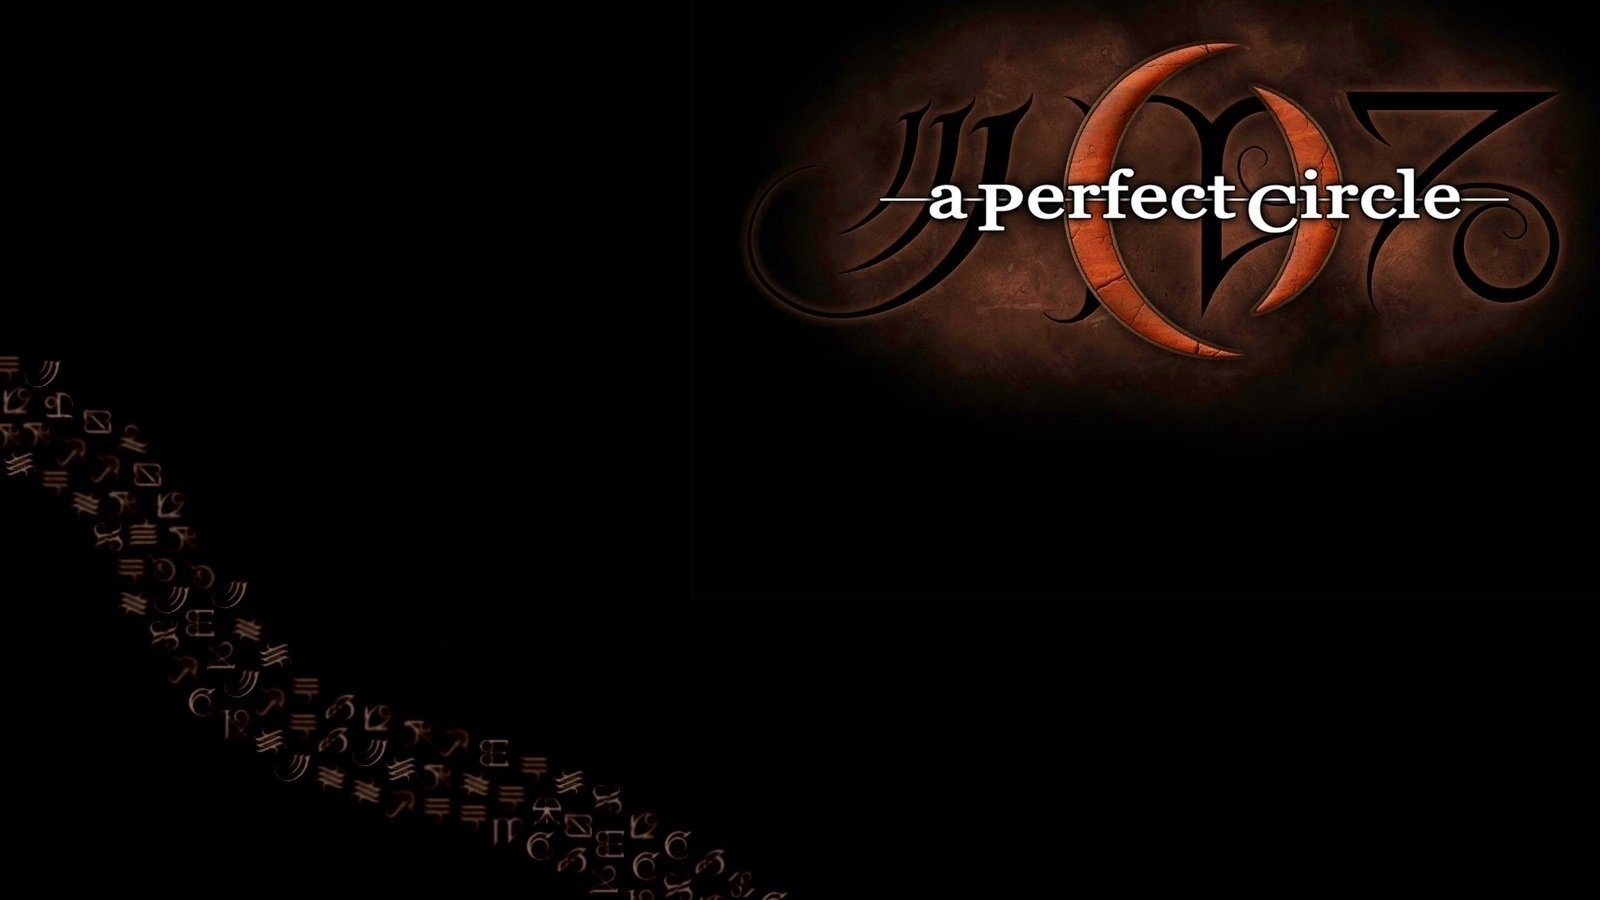 6 a perfect circle hd wallpapers | background images - wallpaper abyss